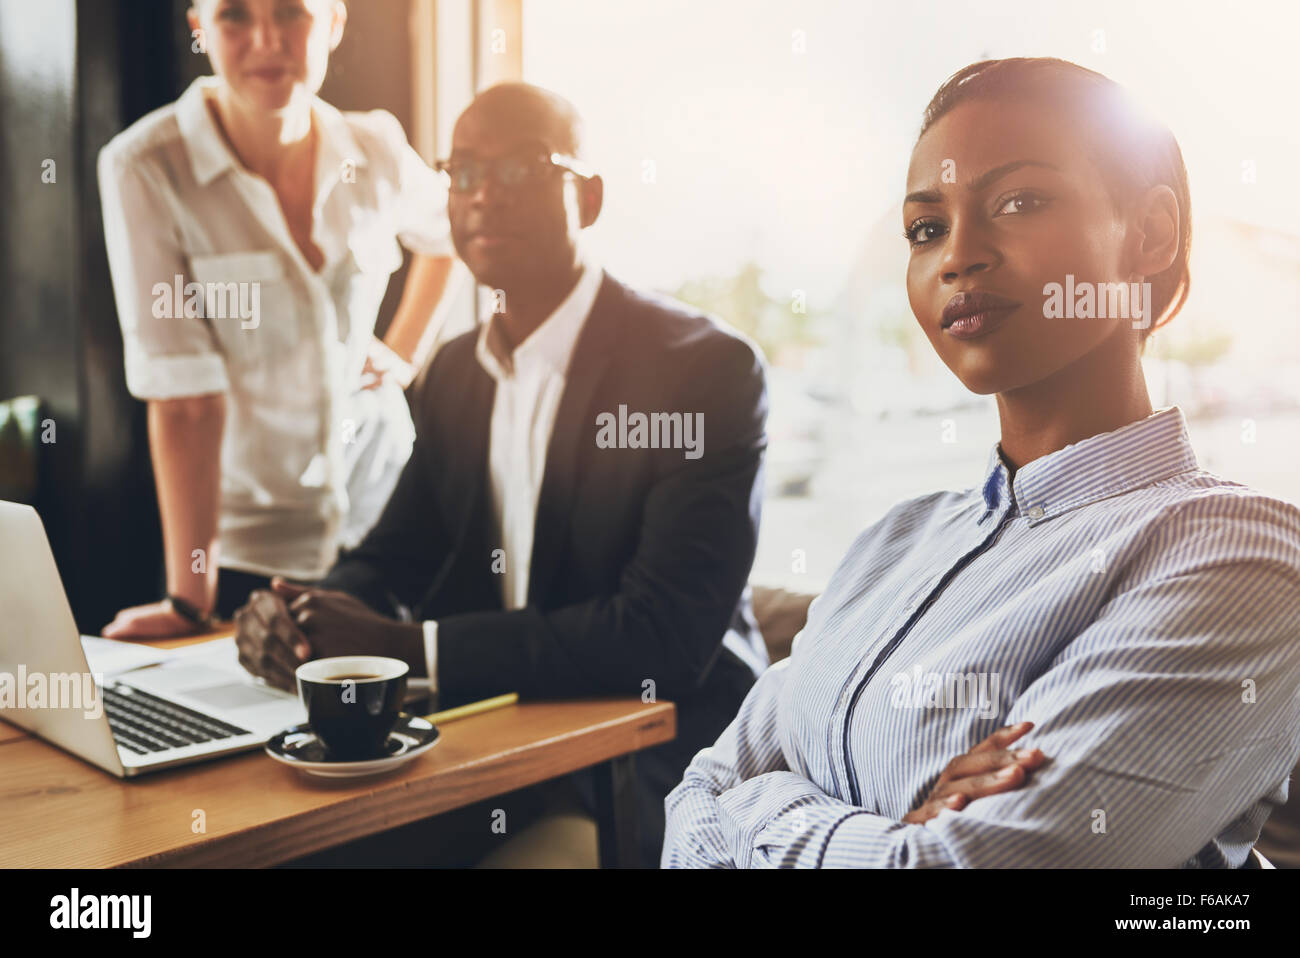 Confident young black business woman sitting in front of other business people - Stock Image